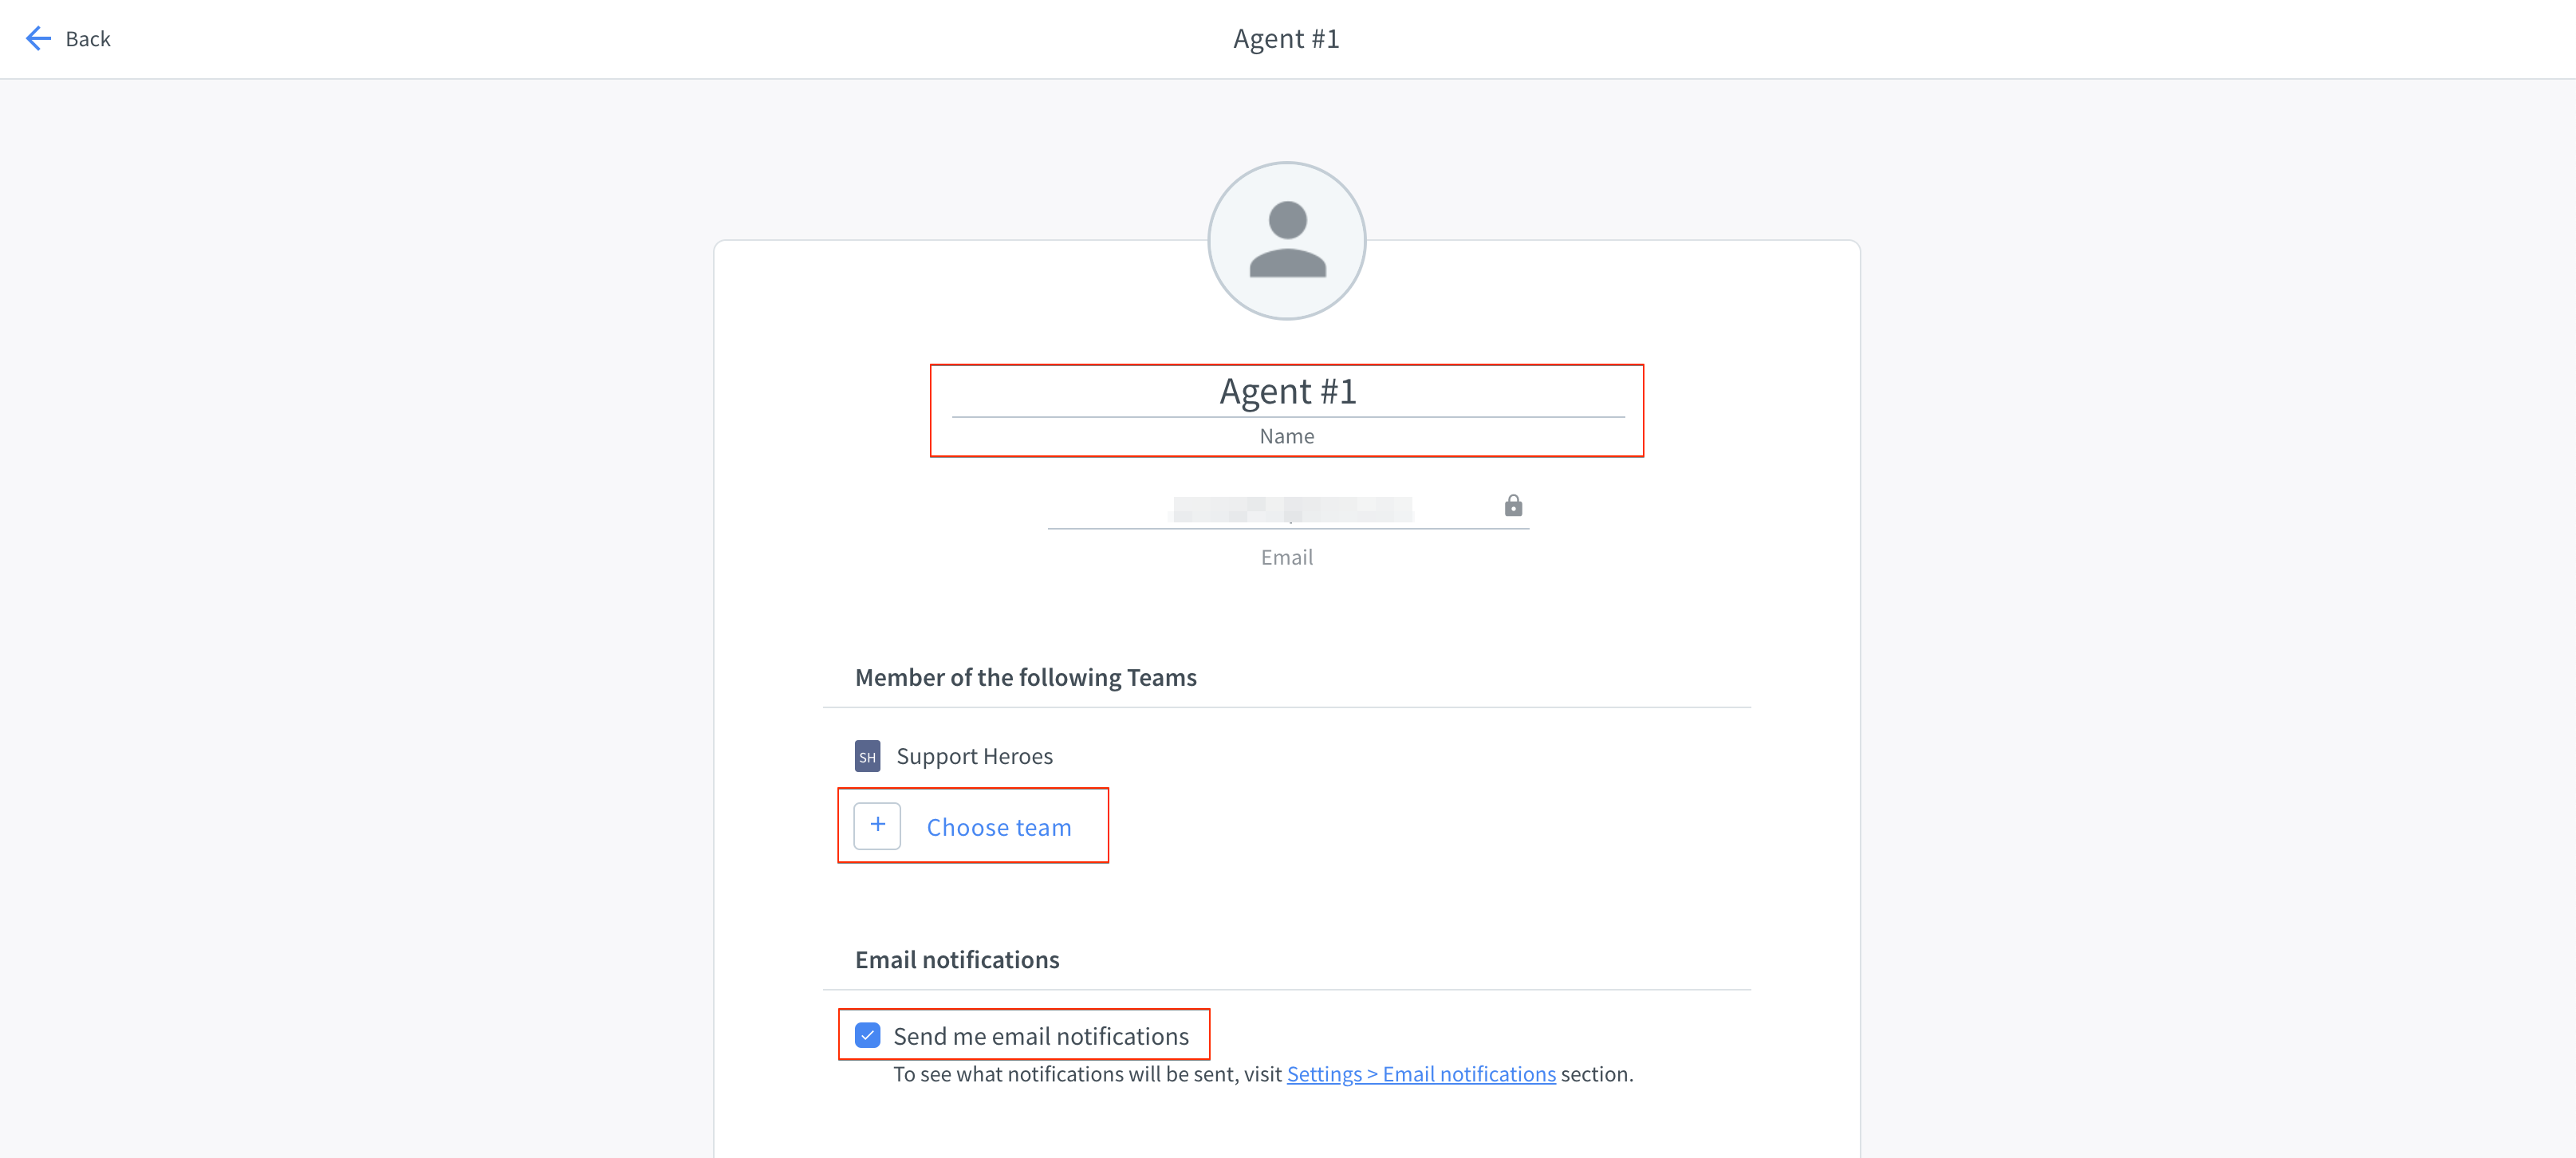 Agent settings in the HelpDesk app